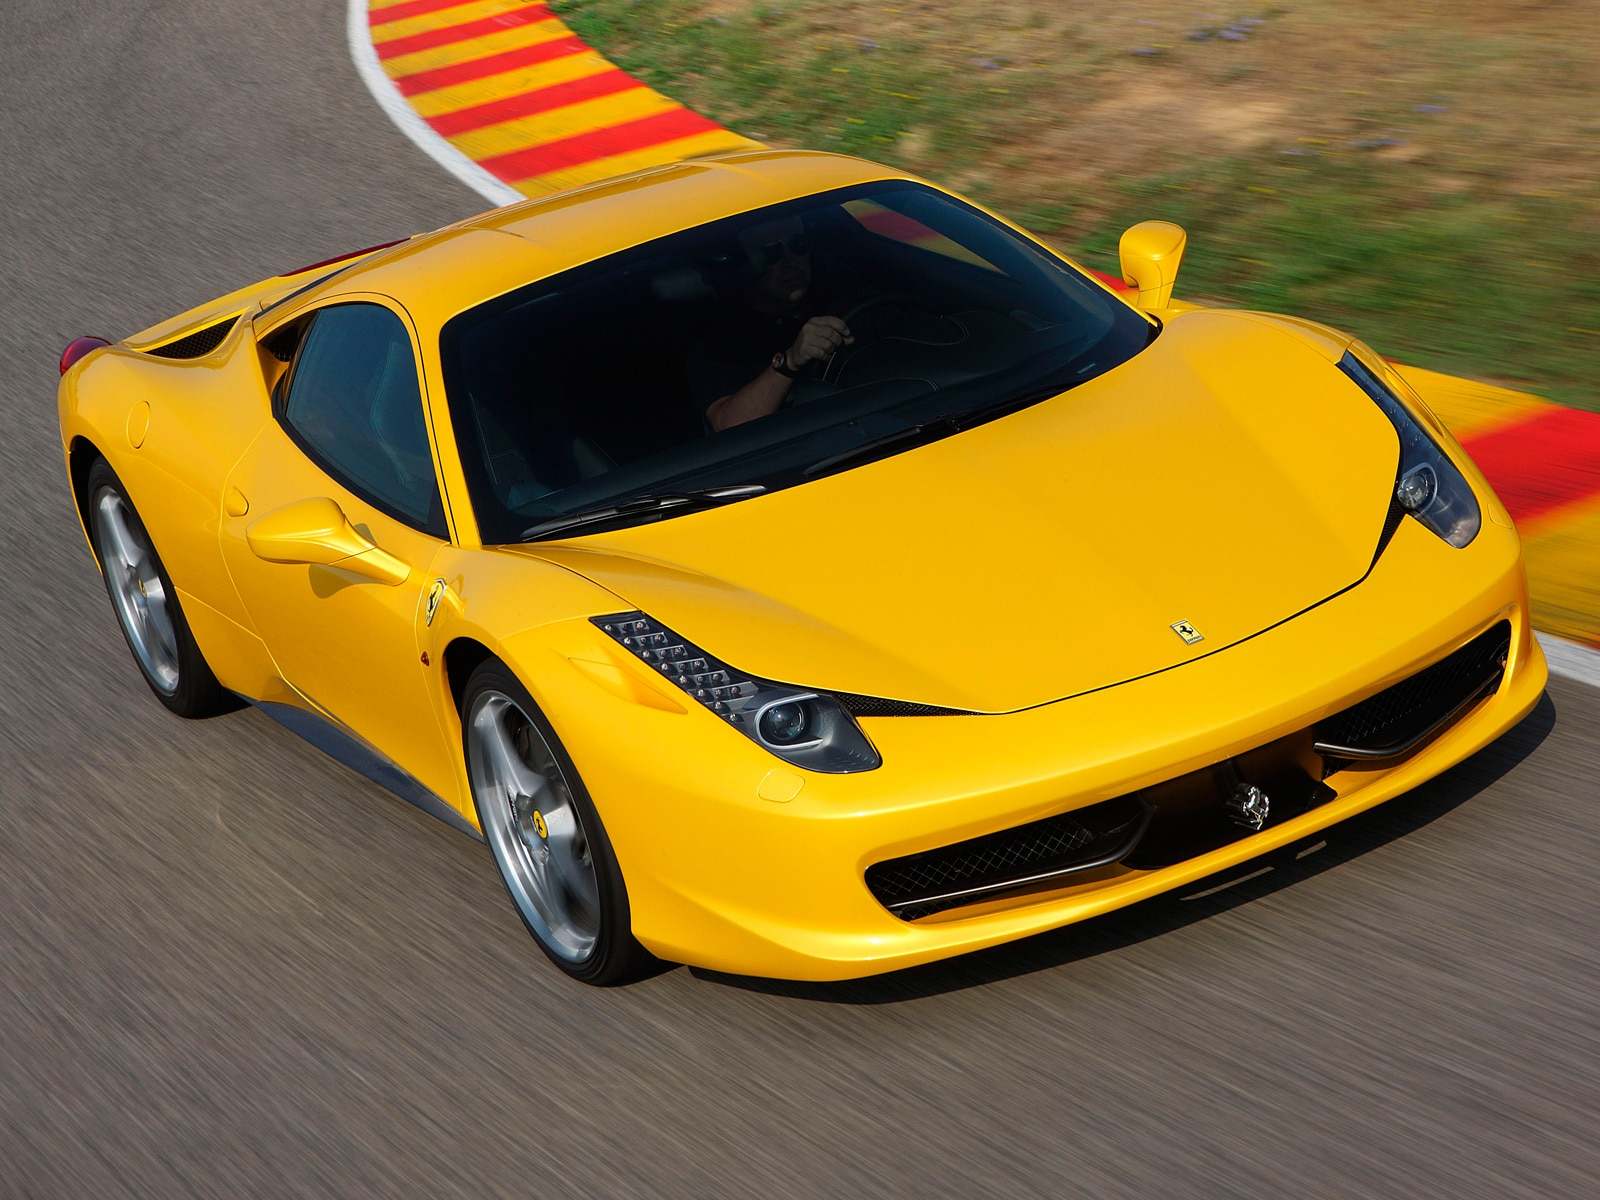 2010 ferrari 458 italia top speed choice image hd cars wallpaper 2010 ferrari 458 italia ferrari sport coupe supercar review these vanachro choice image vanachro Images